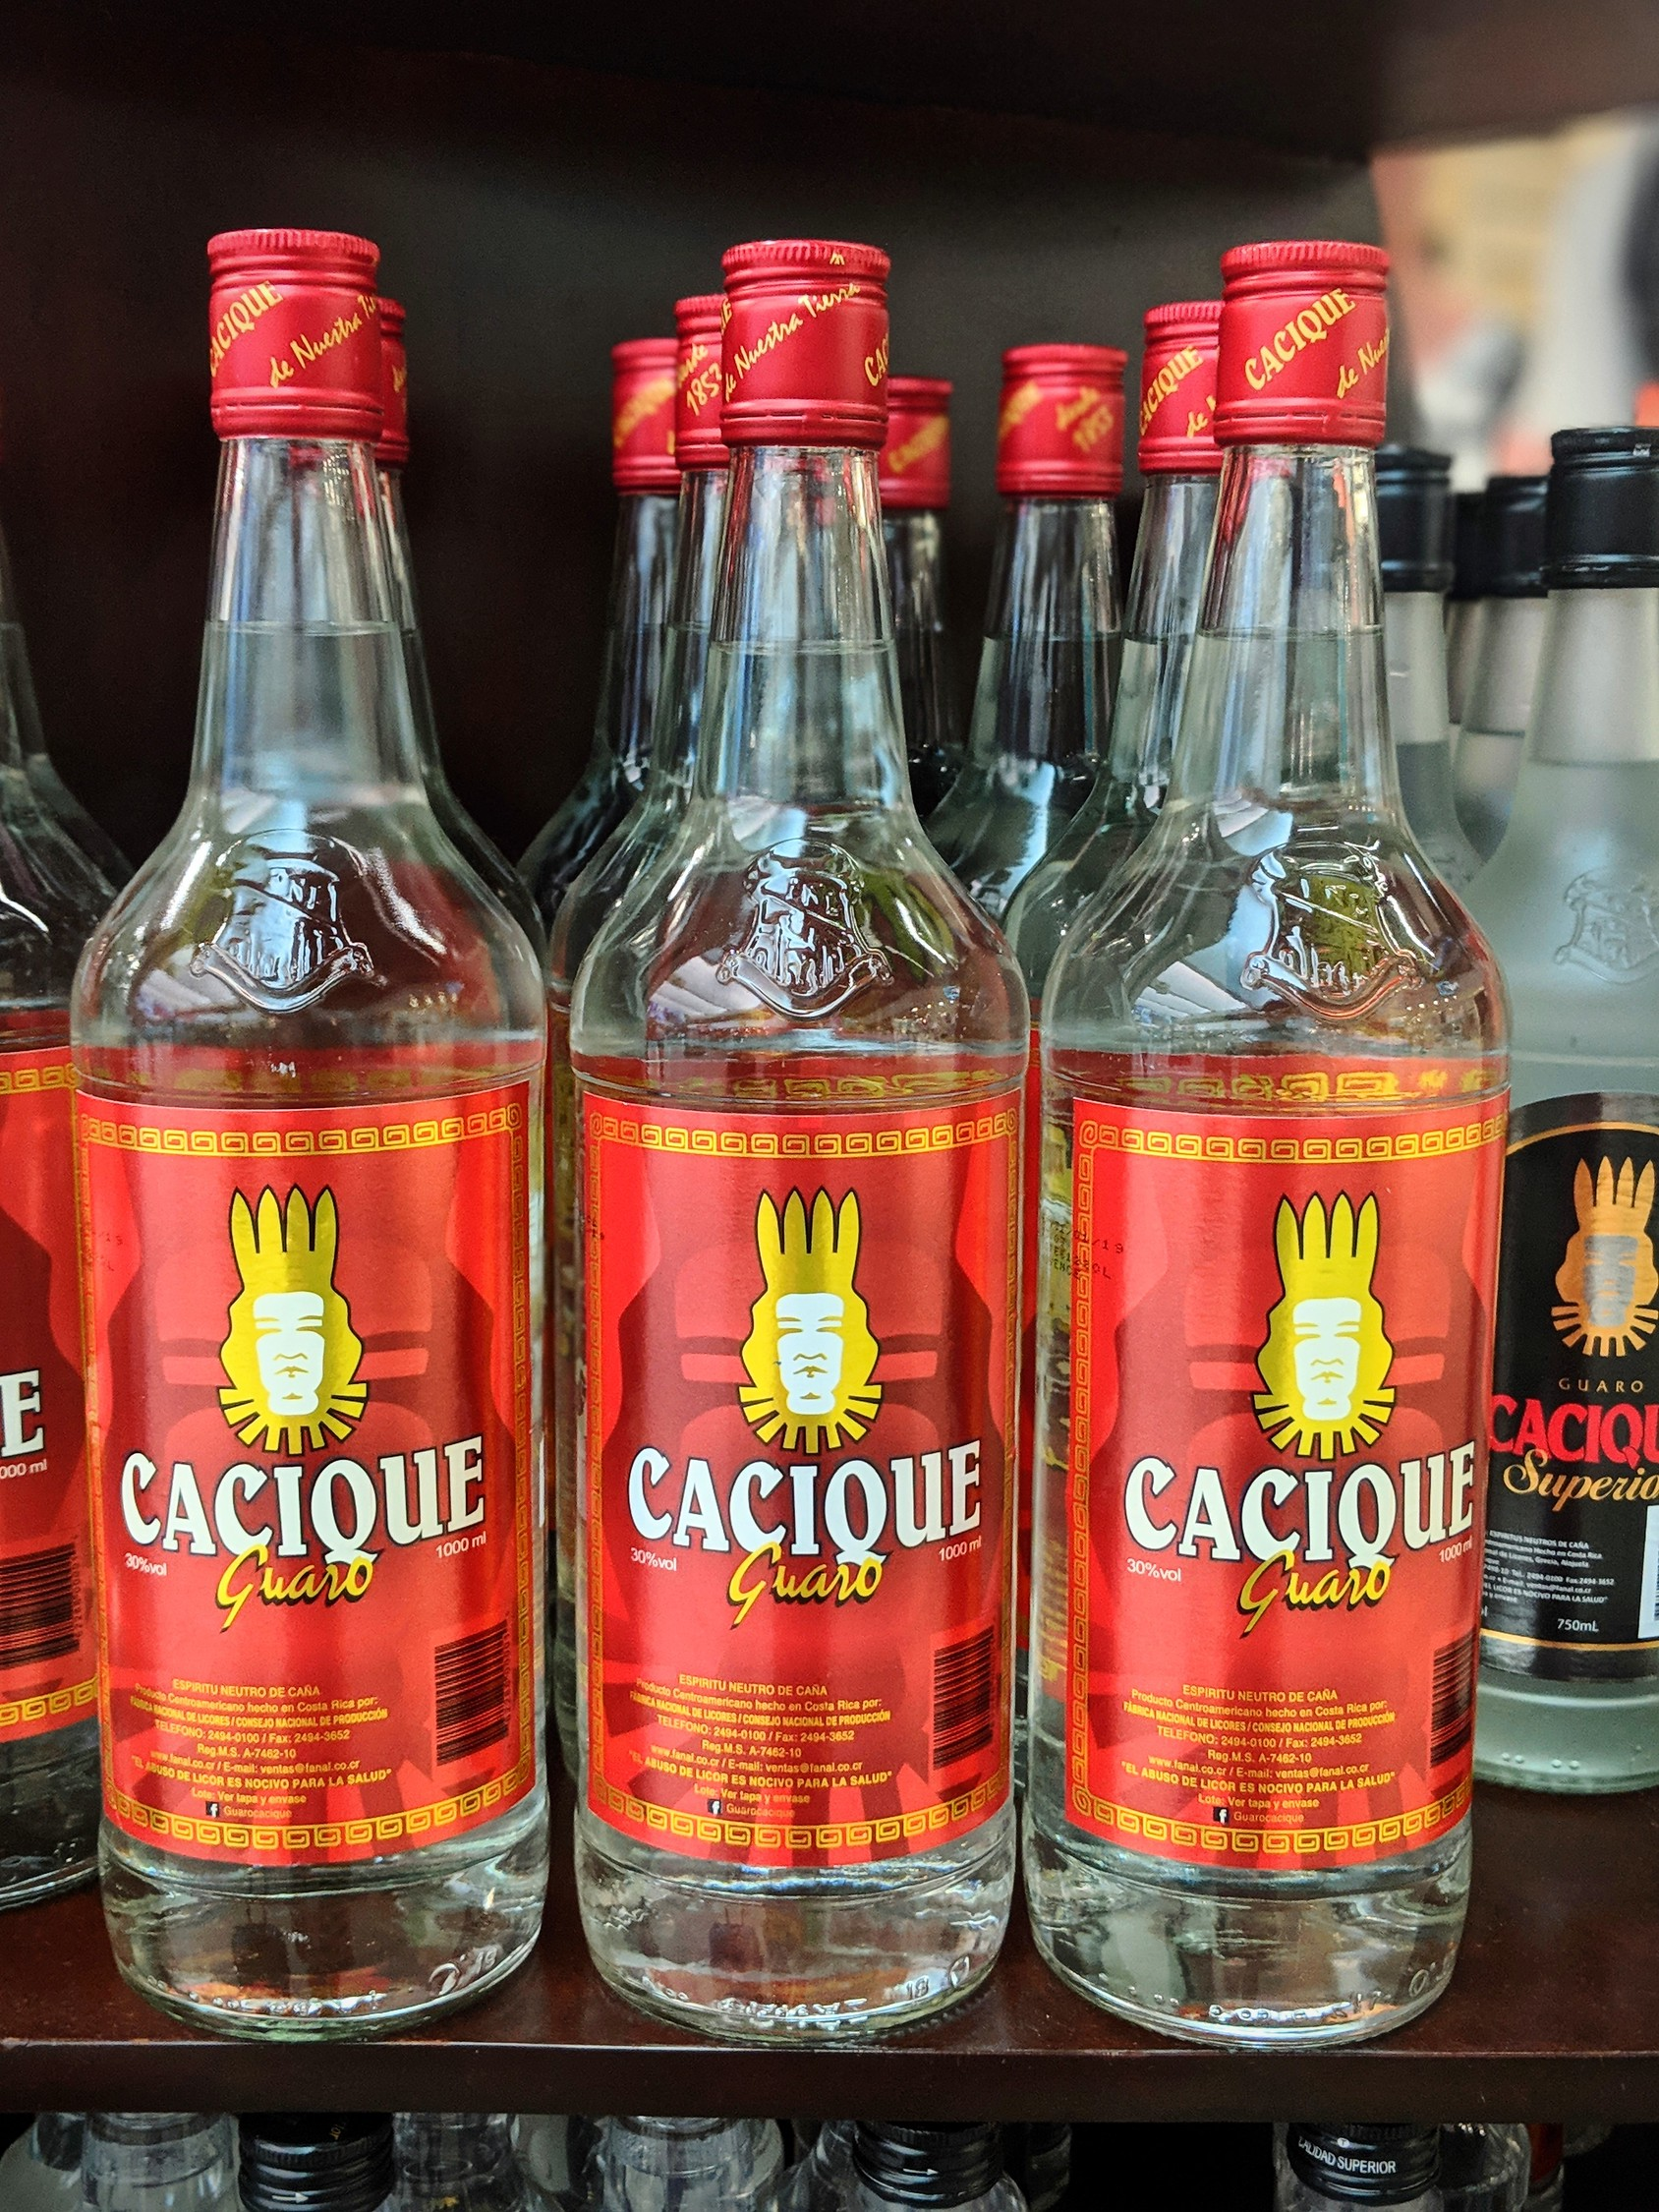 Traditional Costa Rican drink guaro cacique at the San Jose airport duty free store.